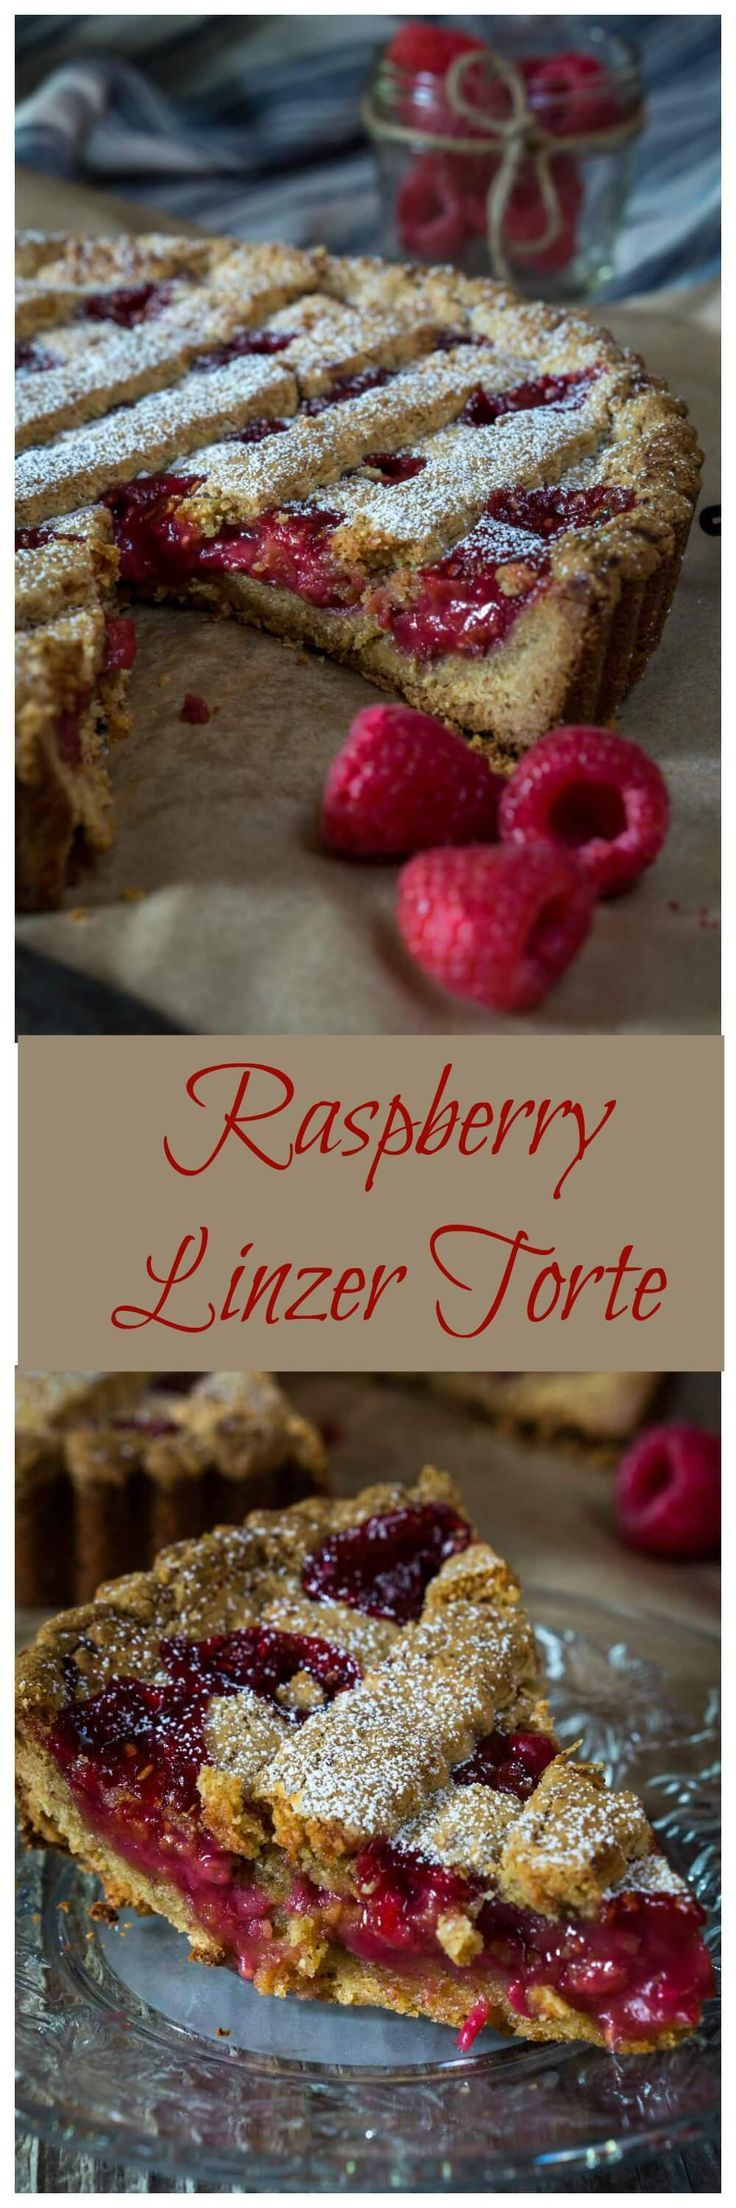 Raspberry Linzer Torte is rustically beautiful. The combination of the warm nuttiness of a homemade torte shell with a fresh raspberry filling is absolutely delicious | HostessAtHeart.com